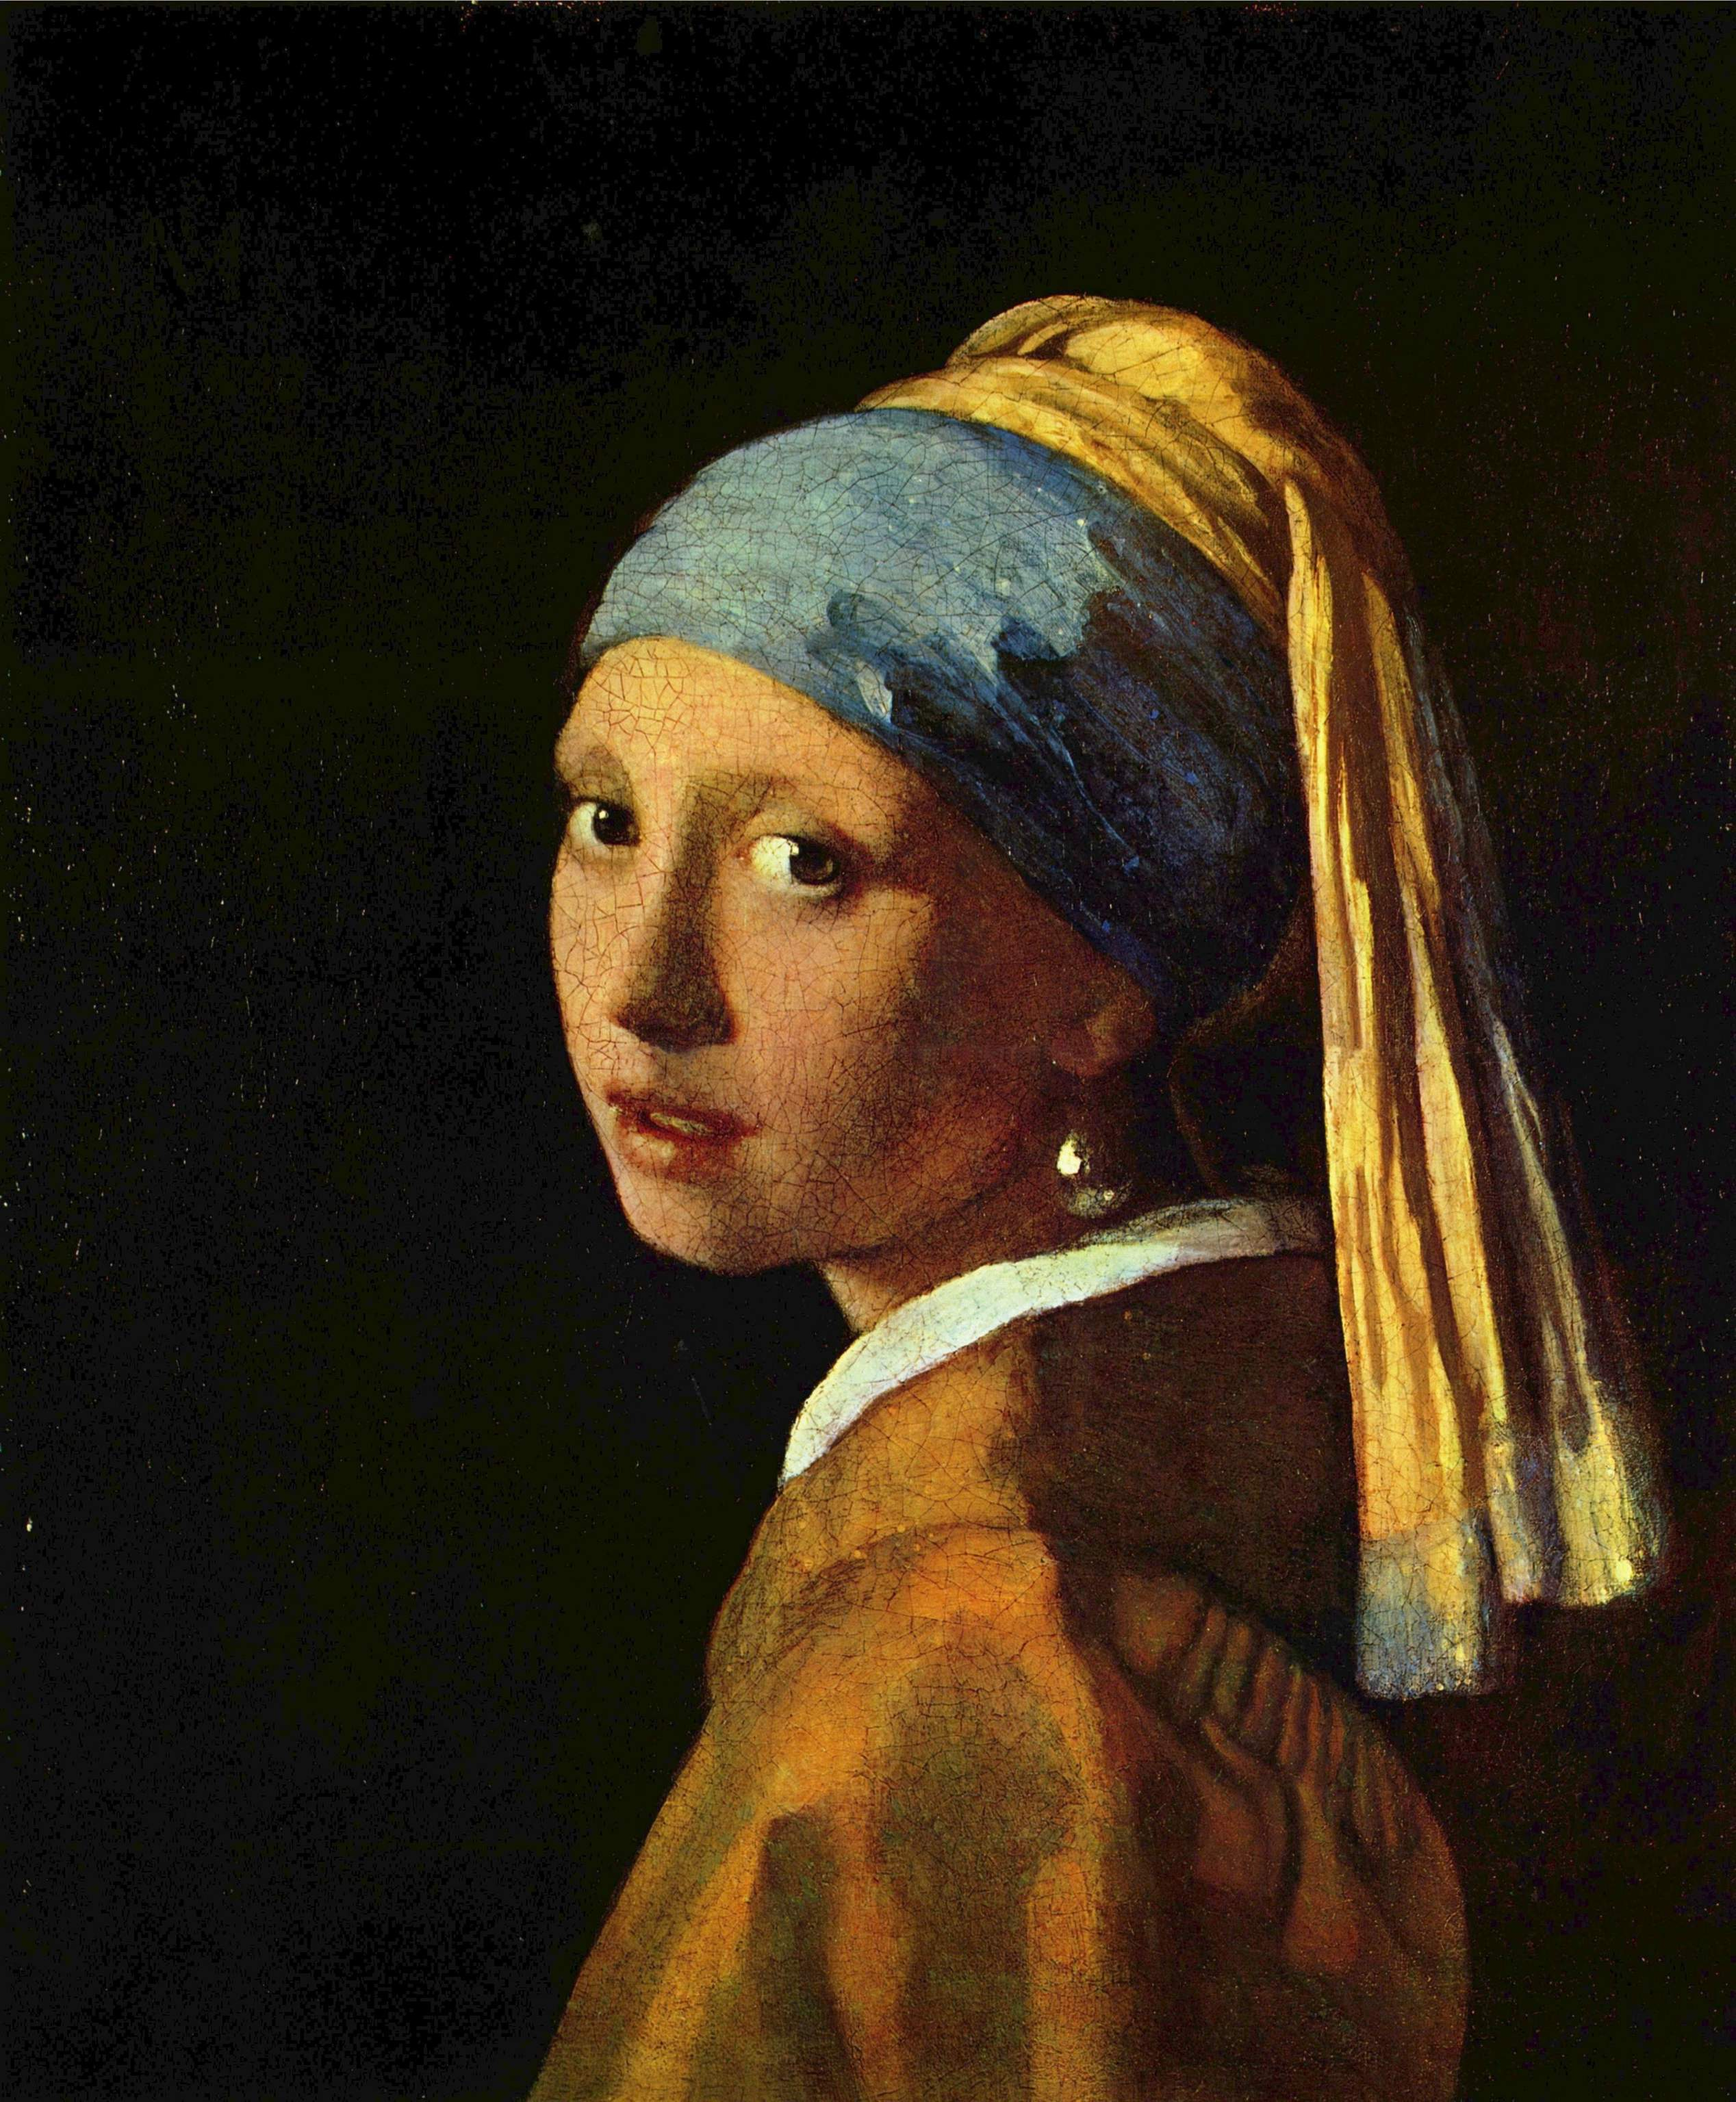 Girl with a pearl earring.  Johannes Vermeer, Circa 1665 - 1675